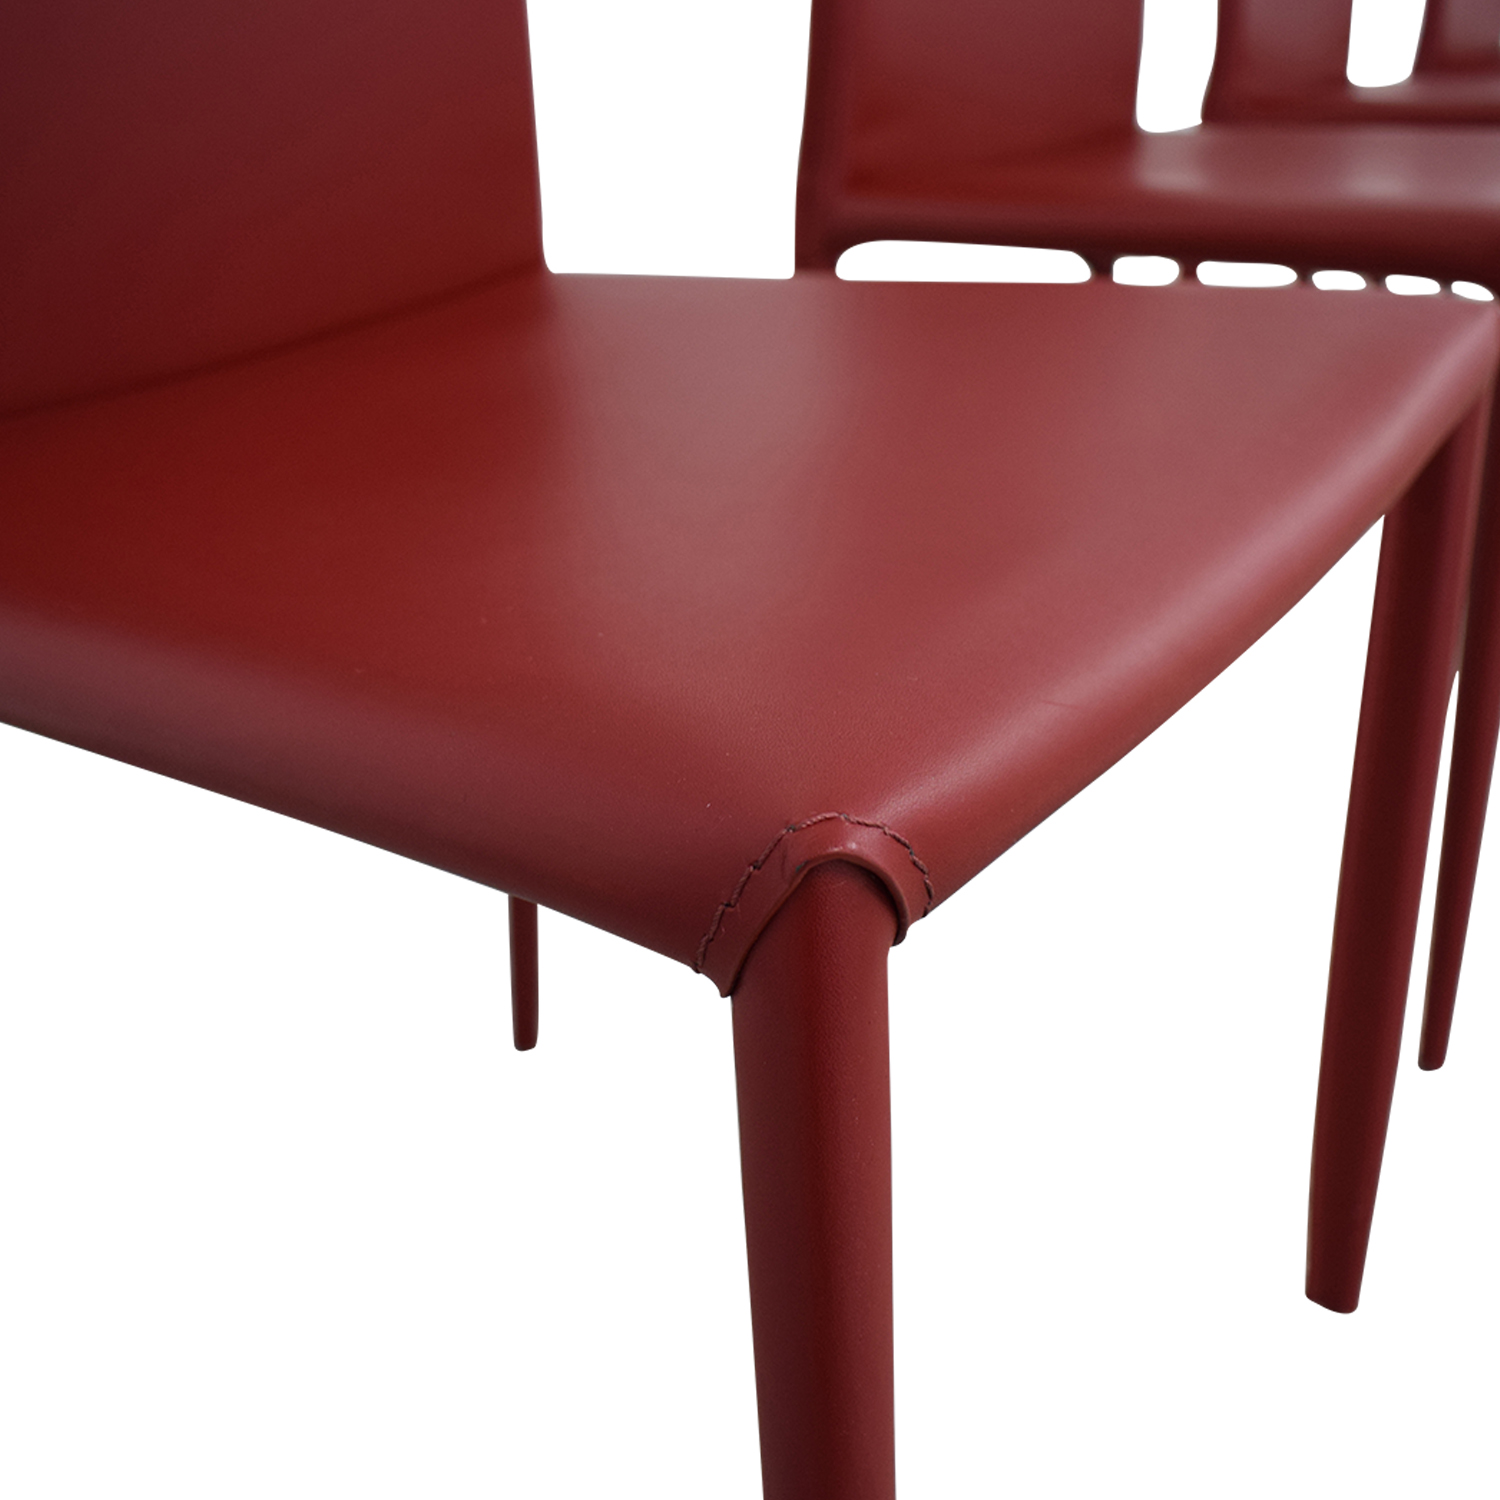 Modloft Modloft Dining Chairs coupon